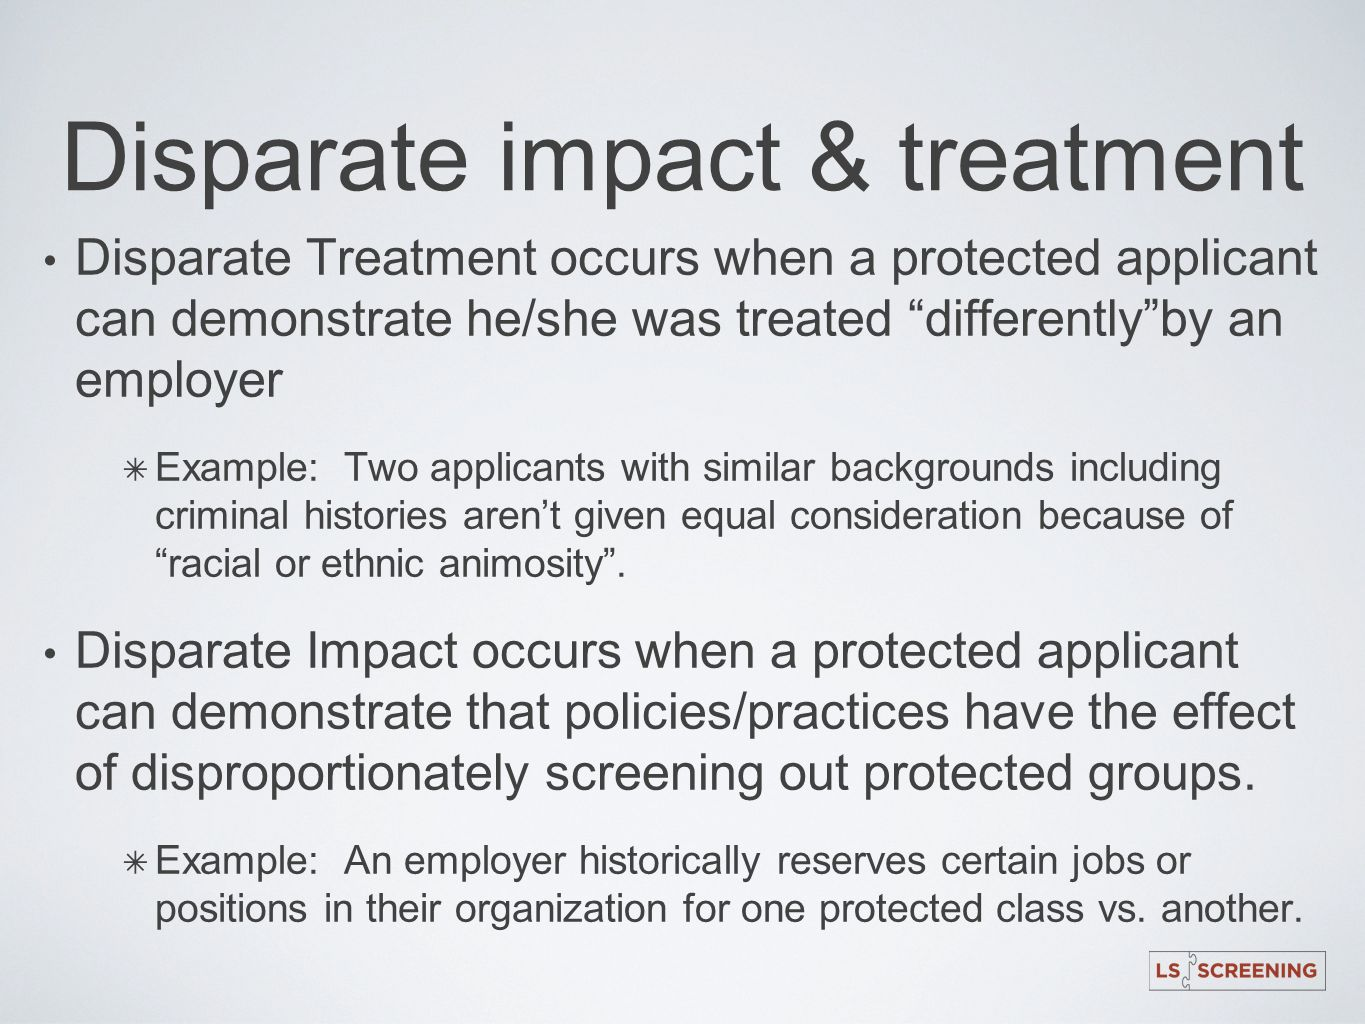 Disparate impact & treatment